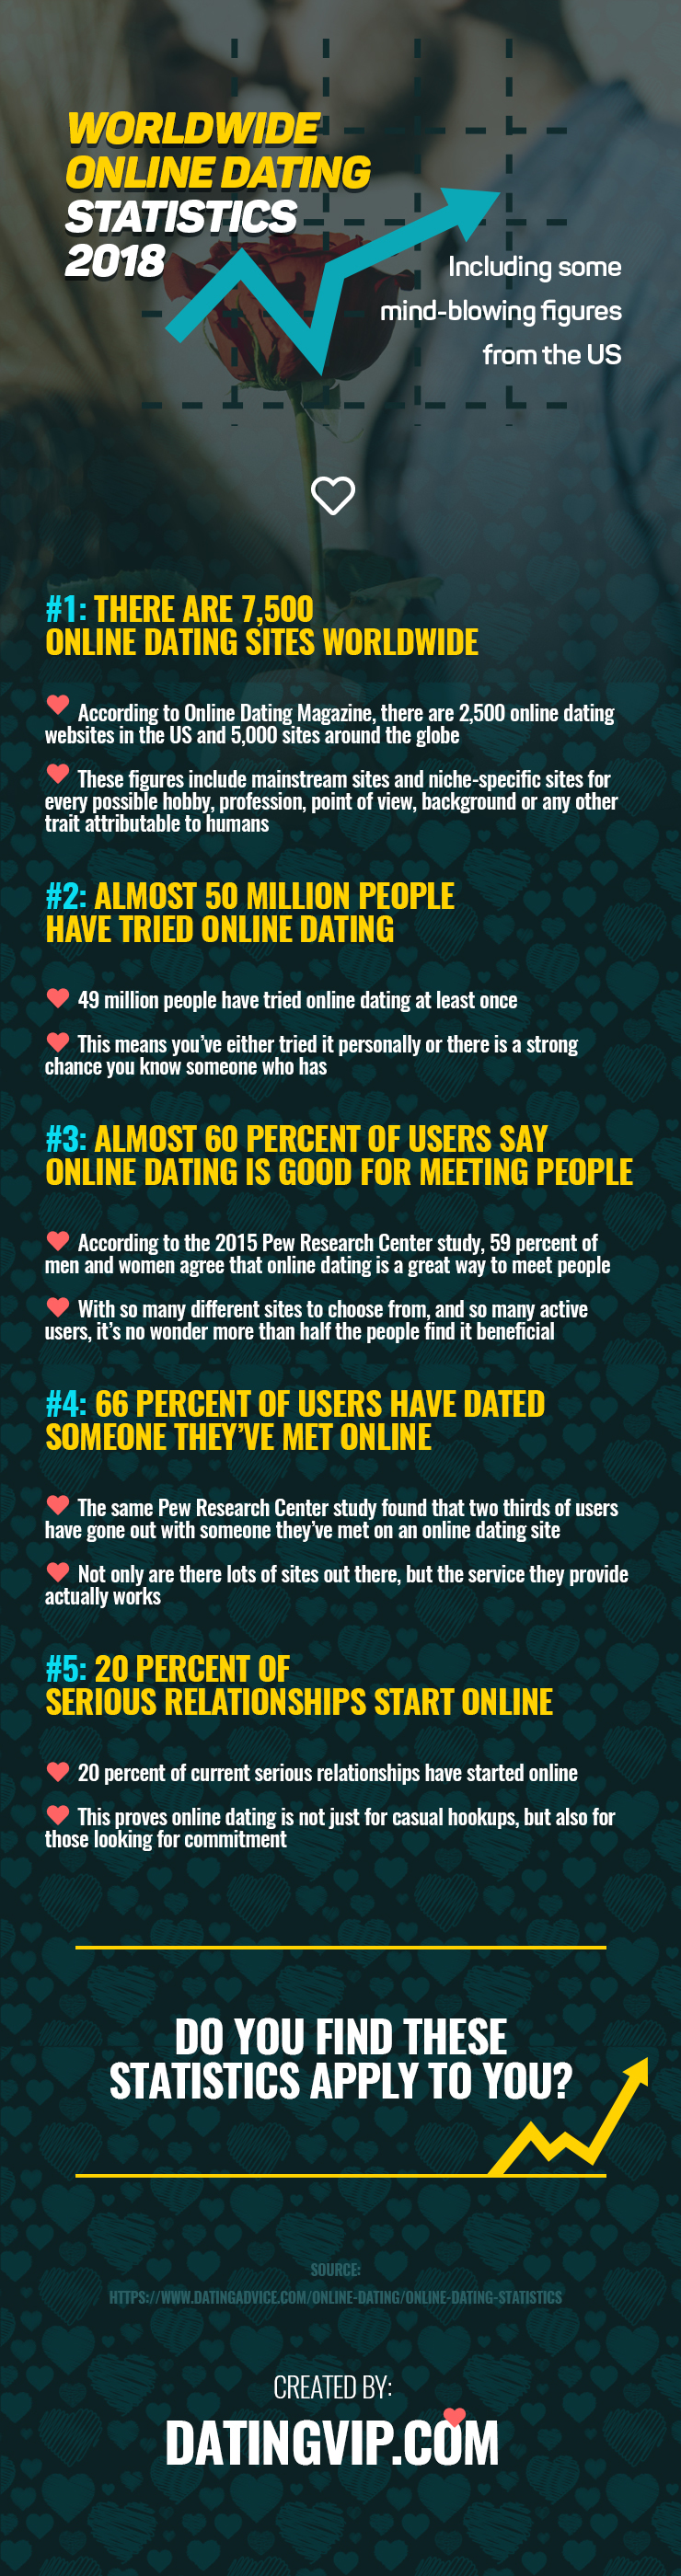 Worldwide Online Dating Statistics